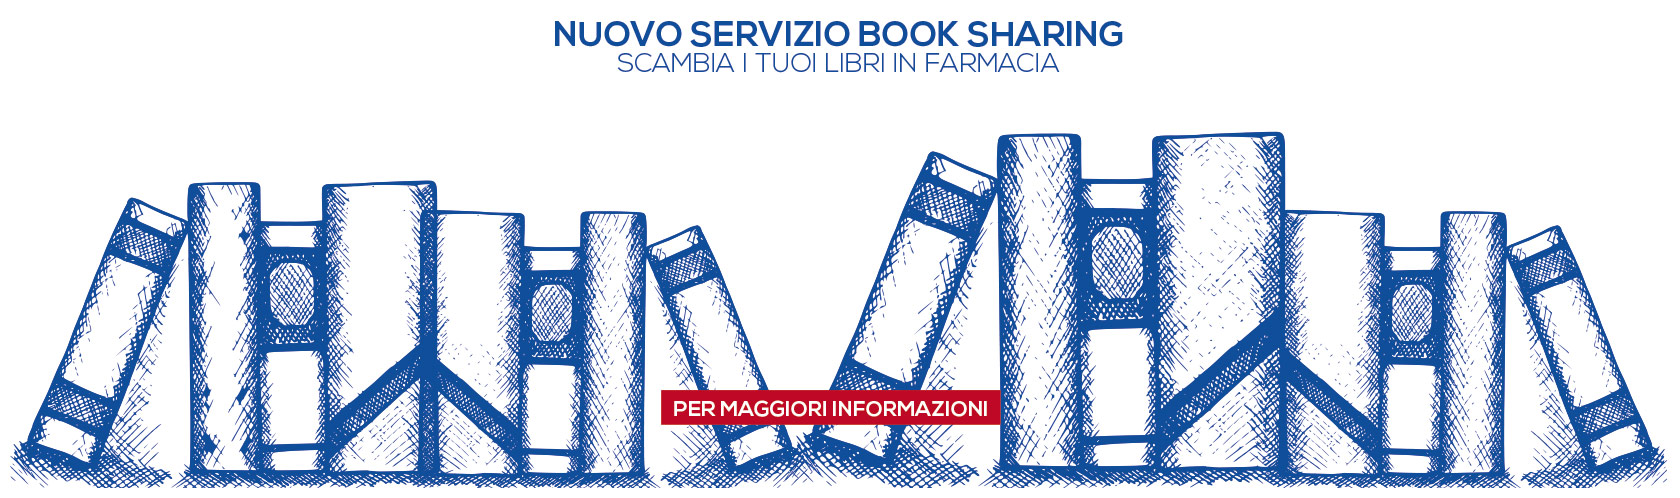 fb_book_sharing_big